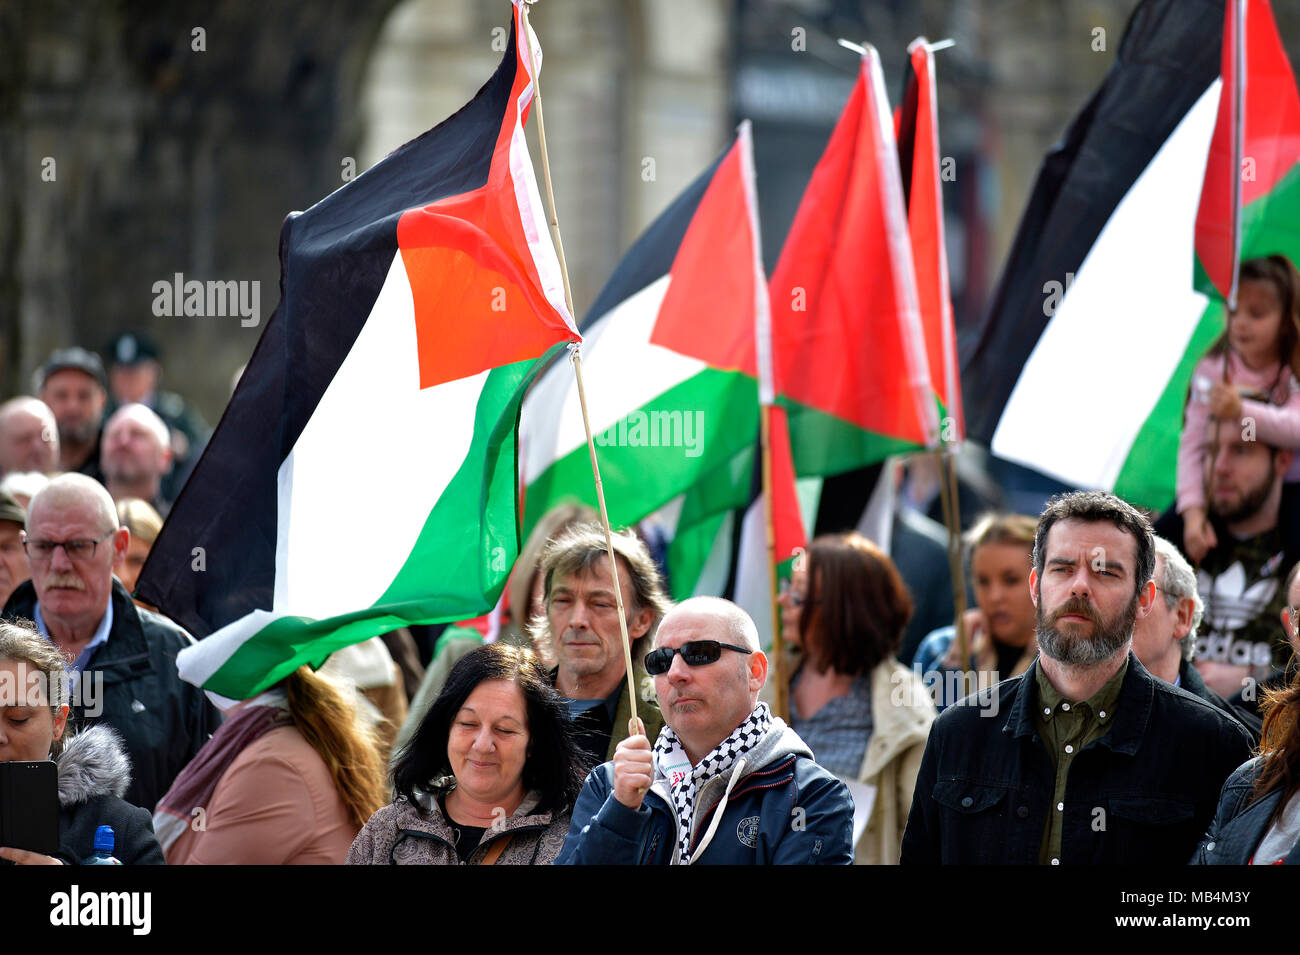 Londonderry, Northern Ireland 7th April, 2018.  Palestinian Solidarity Rally. Several Hundred people attend a rally in solidarity with the Palestinian Great March of Return. The protest was organized by the Ireland Palestine Solidarity Campaign.  ©George Sweeney / Alamy Live News - Stock Image